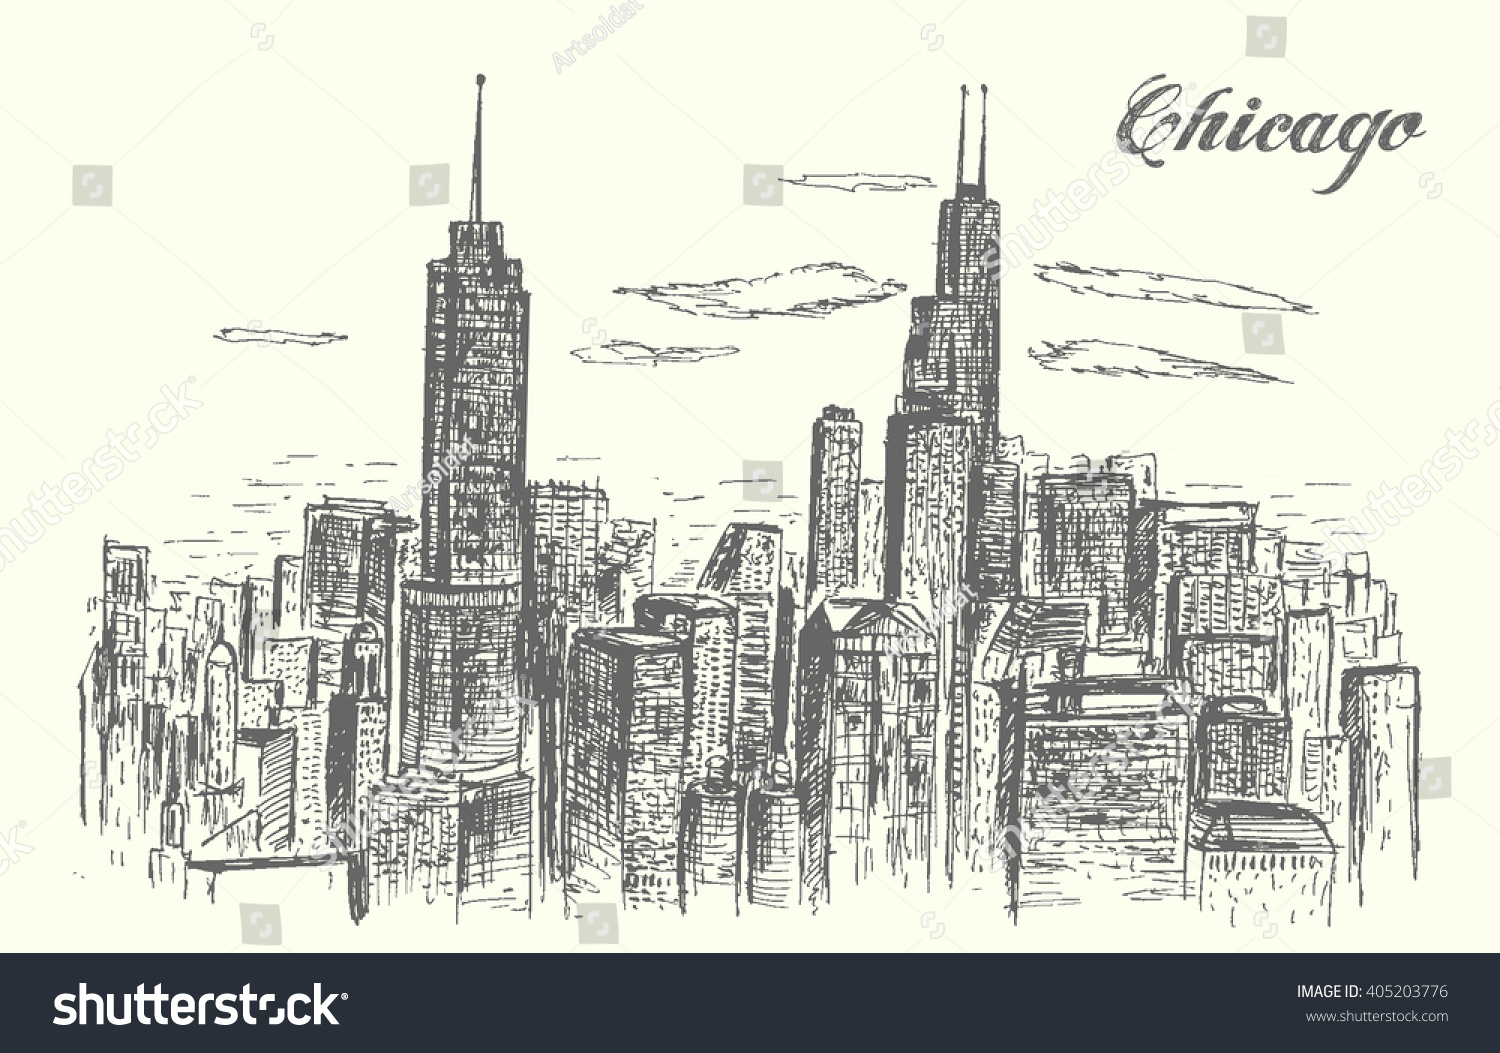 1500x1053 Chicago Skyline Drawing Chicago City Pencil Drawing Stock